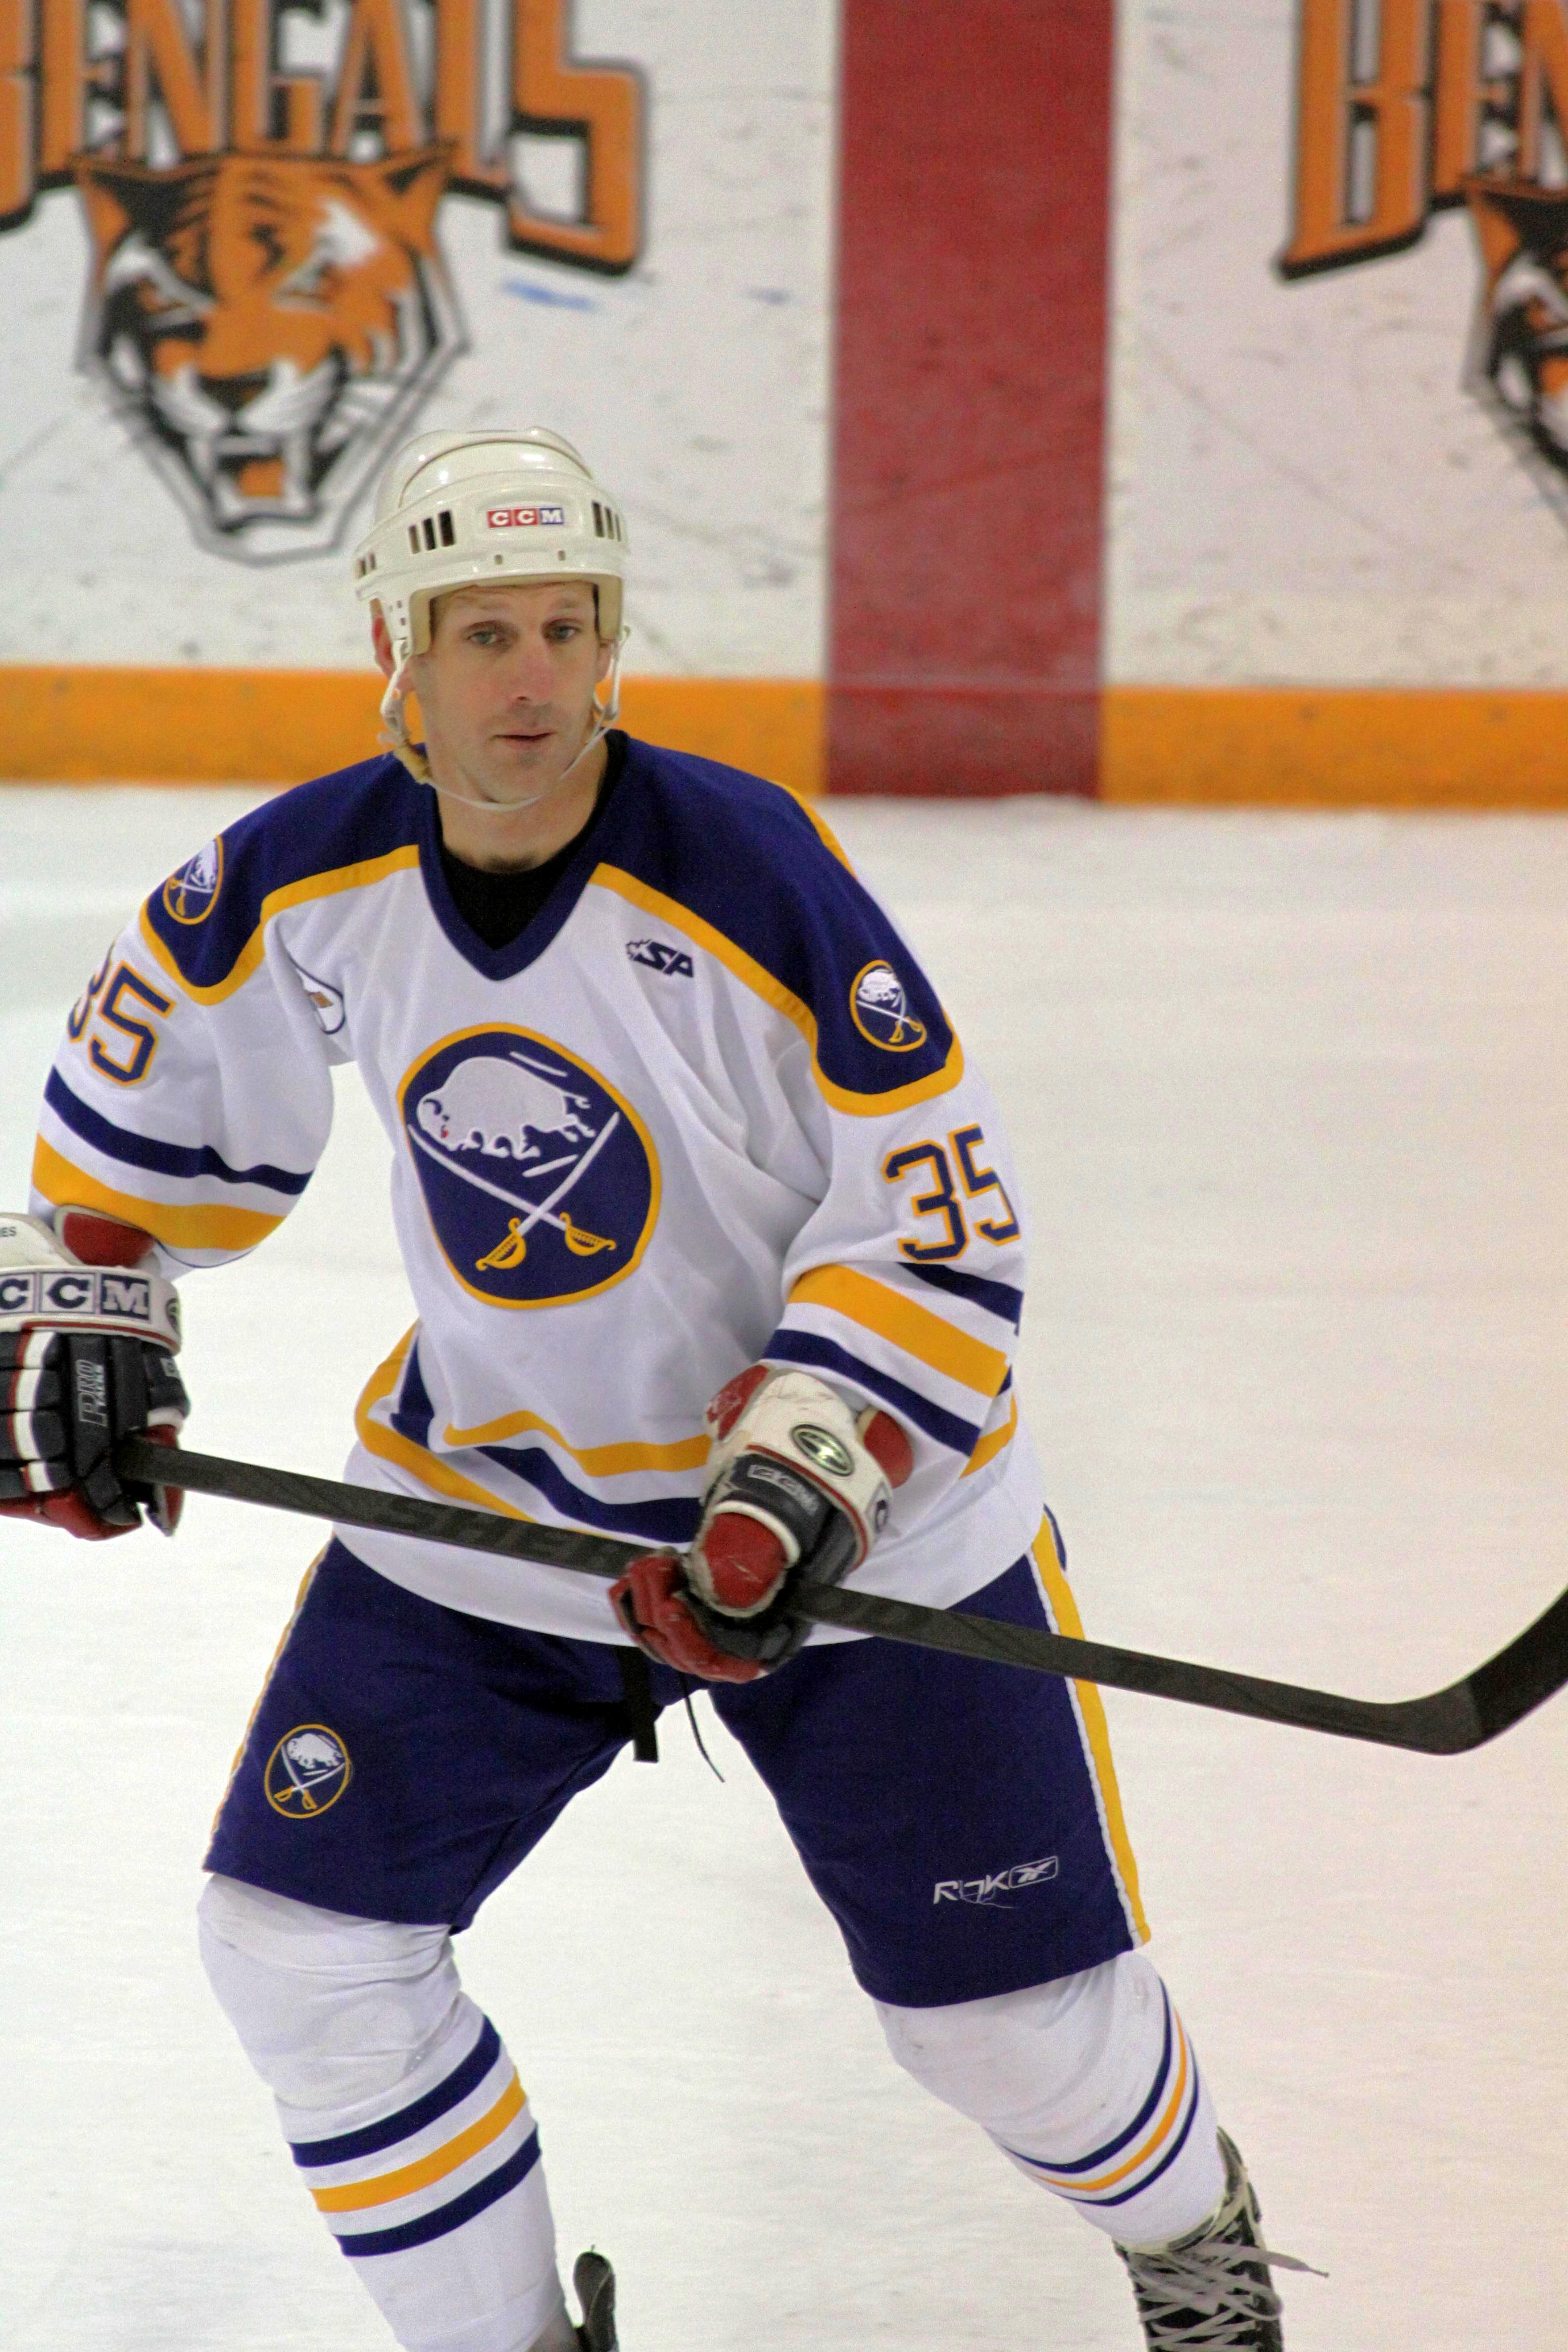 Buffalo Sabres Alumni Event benefiting Providence House